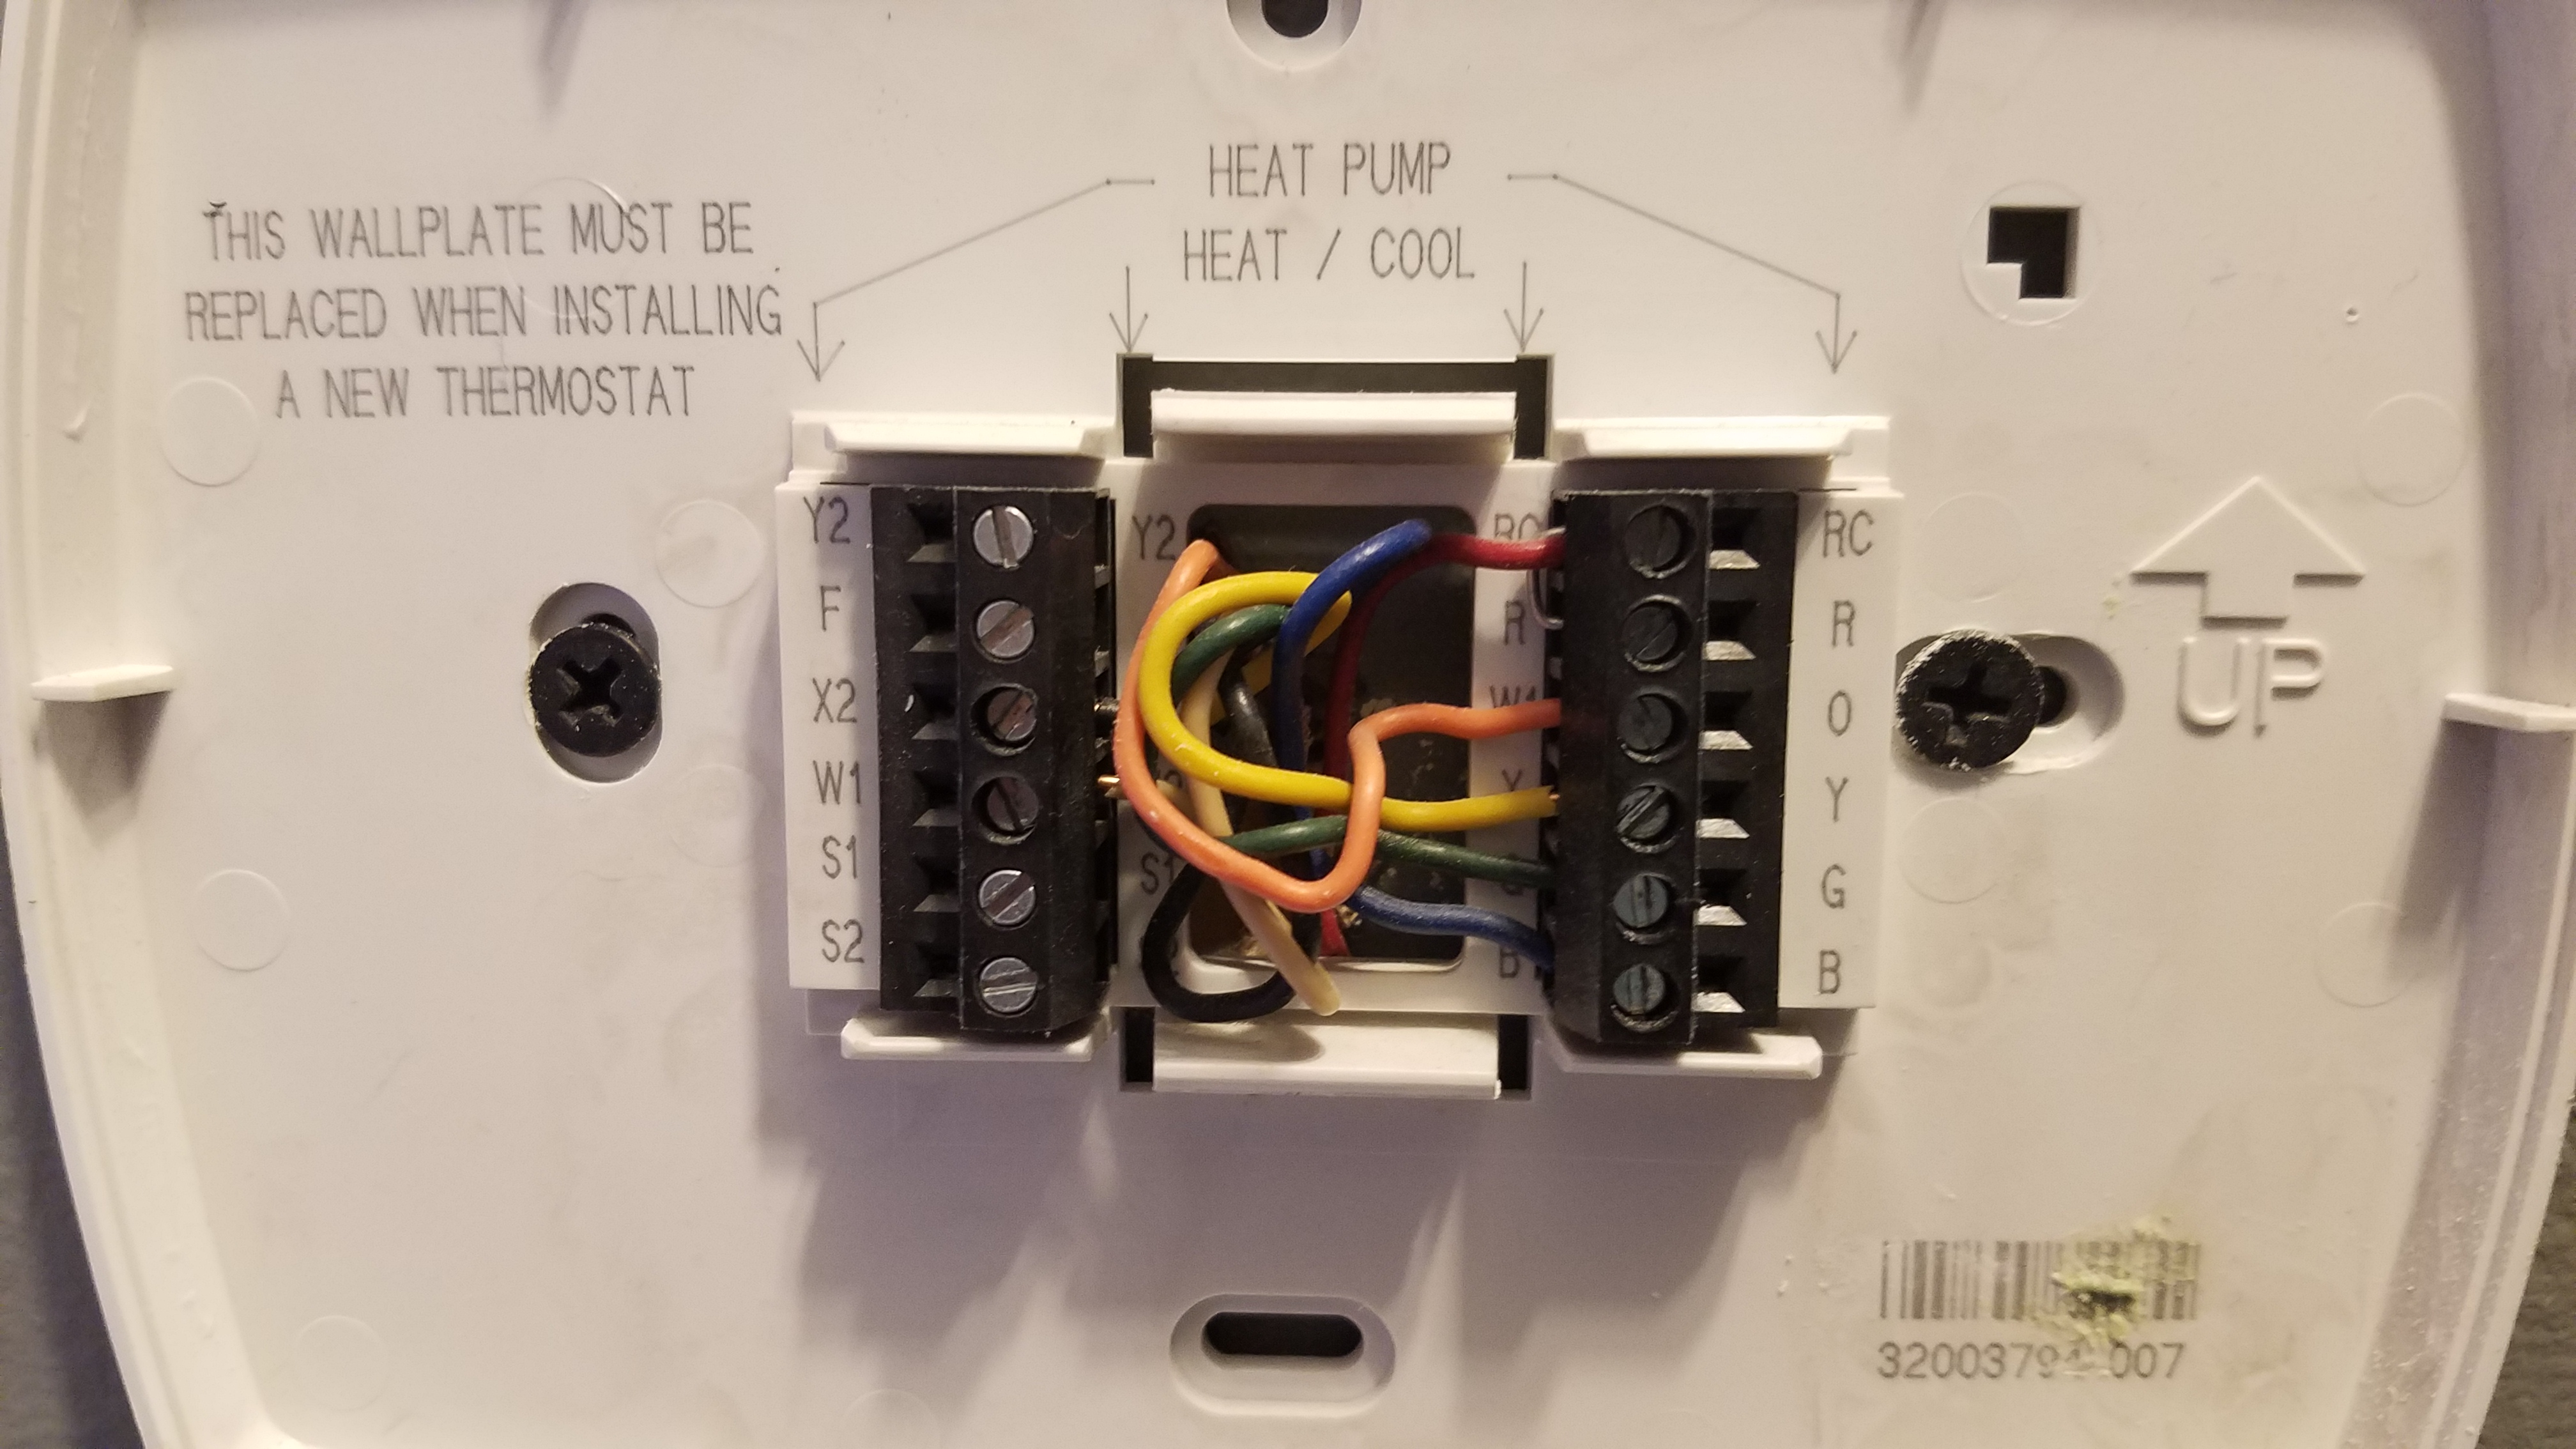 hight resolution of nest thermostat and heat pumps w aux chris tierney rh christierney com goodman heat pump thermostat wiring diagram goodman air handler wiring diagrams